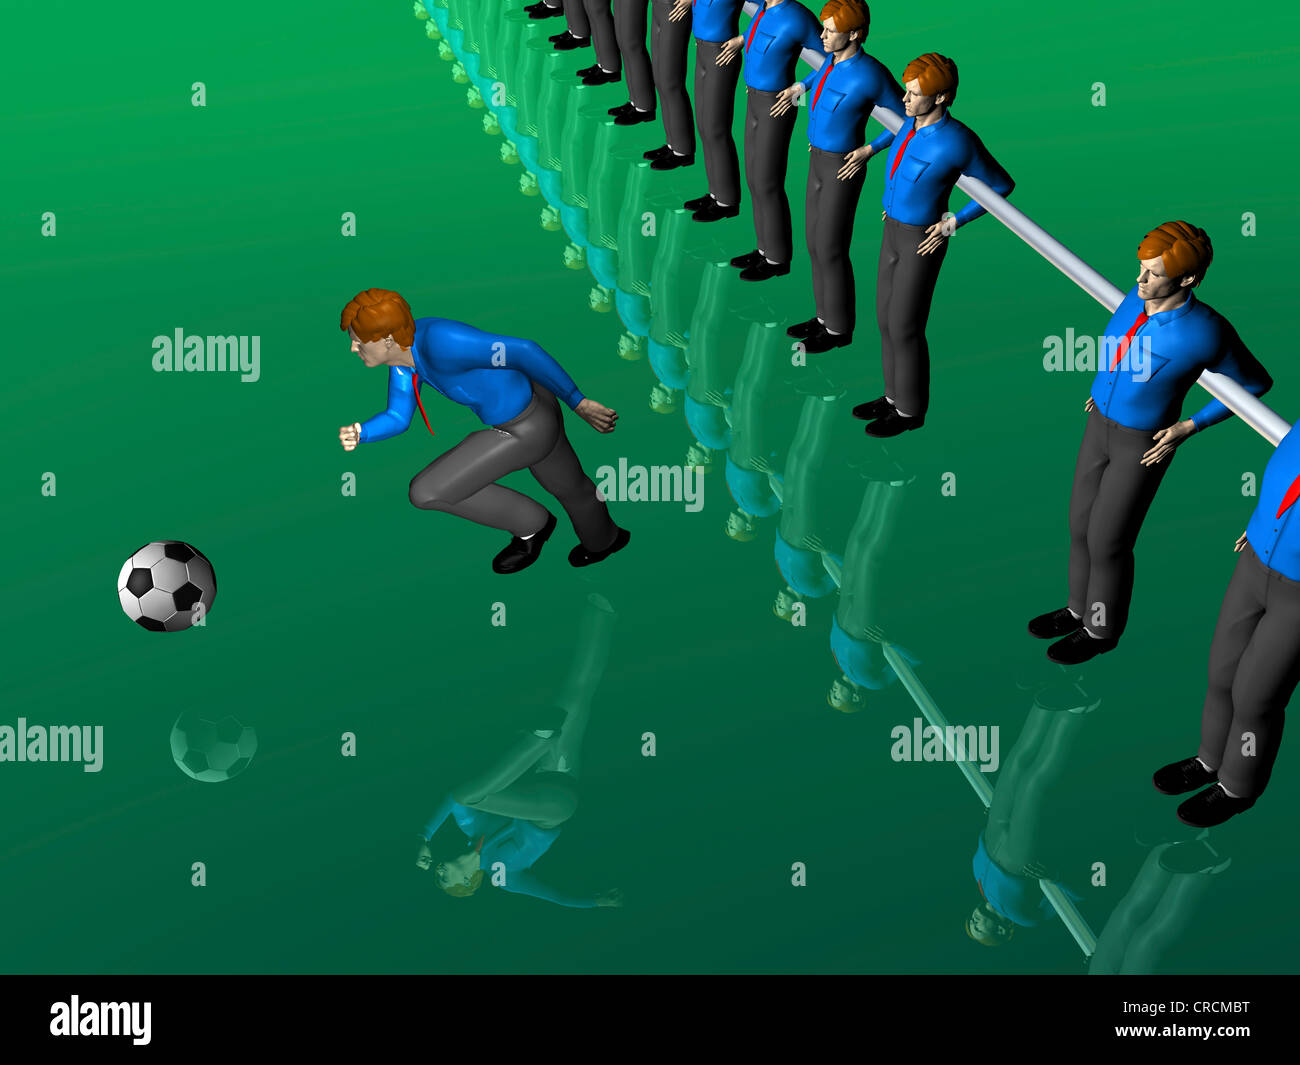 Table soccer figures, one running after the ball, illustration, symbolic image - Stock Image